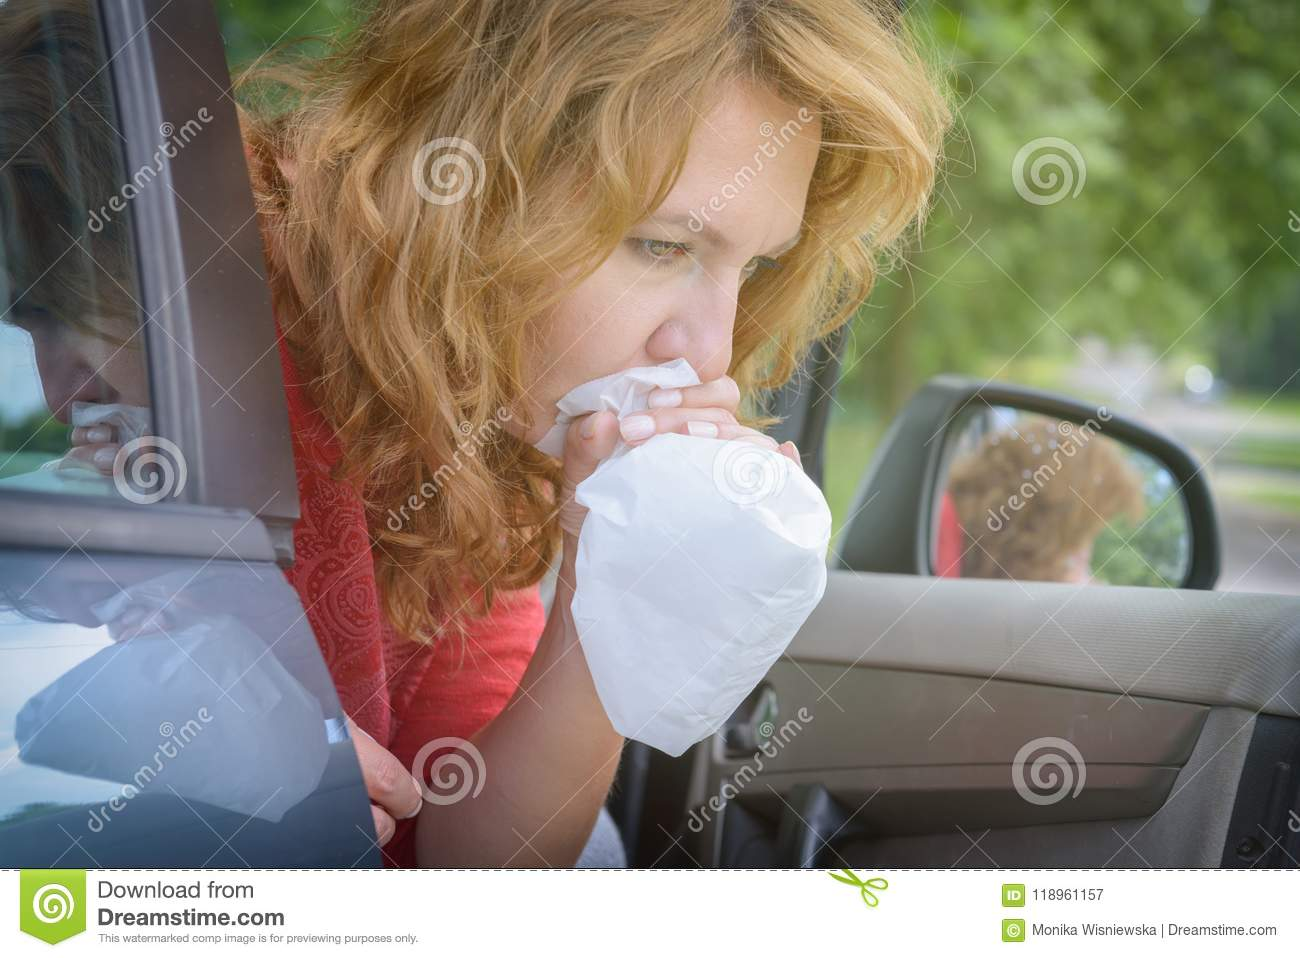 Woman suffering from motion sickness